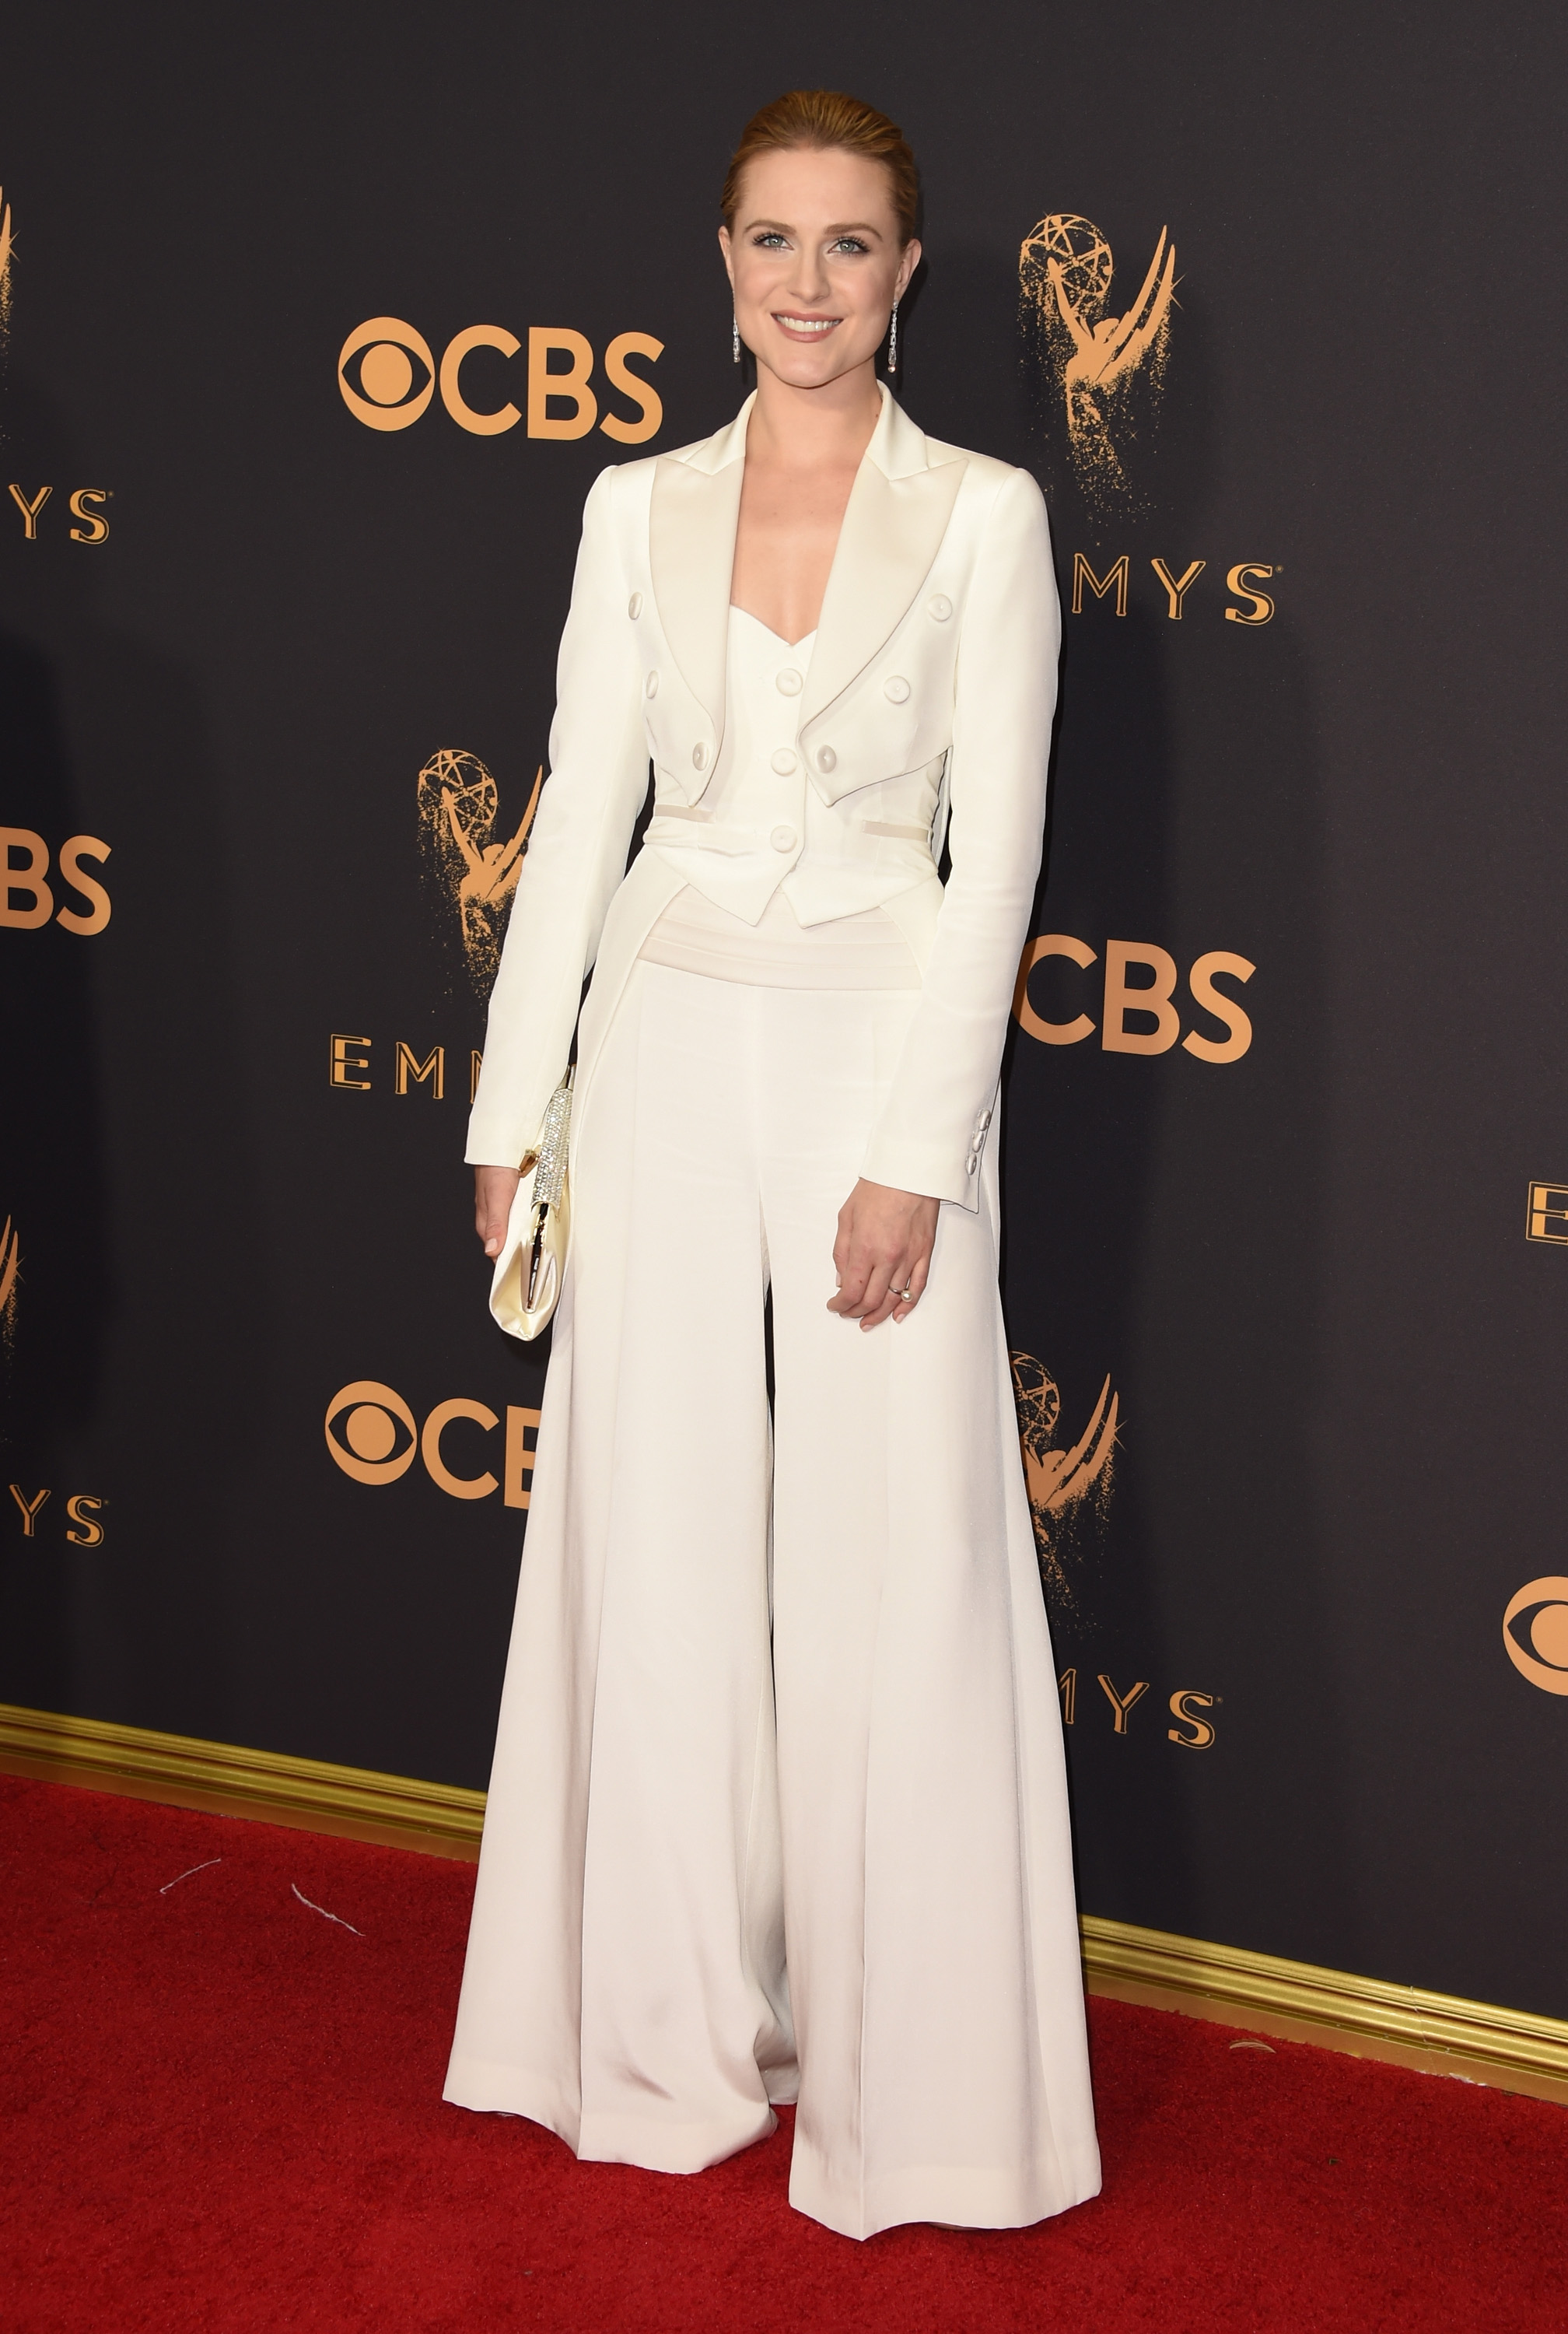 Evan Rachel Wood Emmys Red Carpet 2017